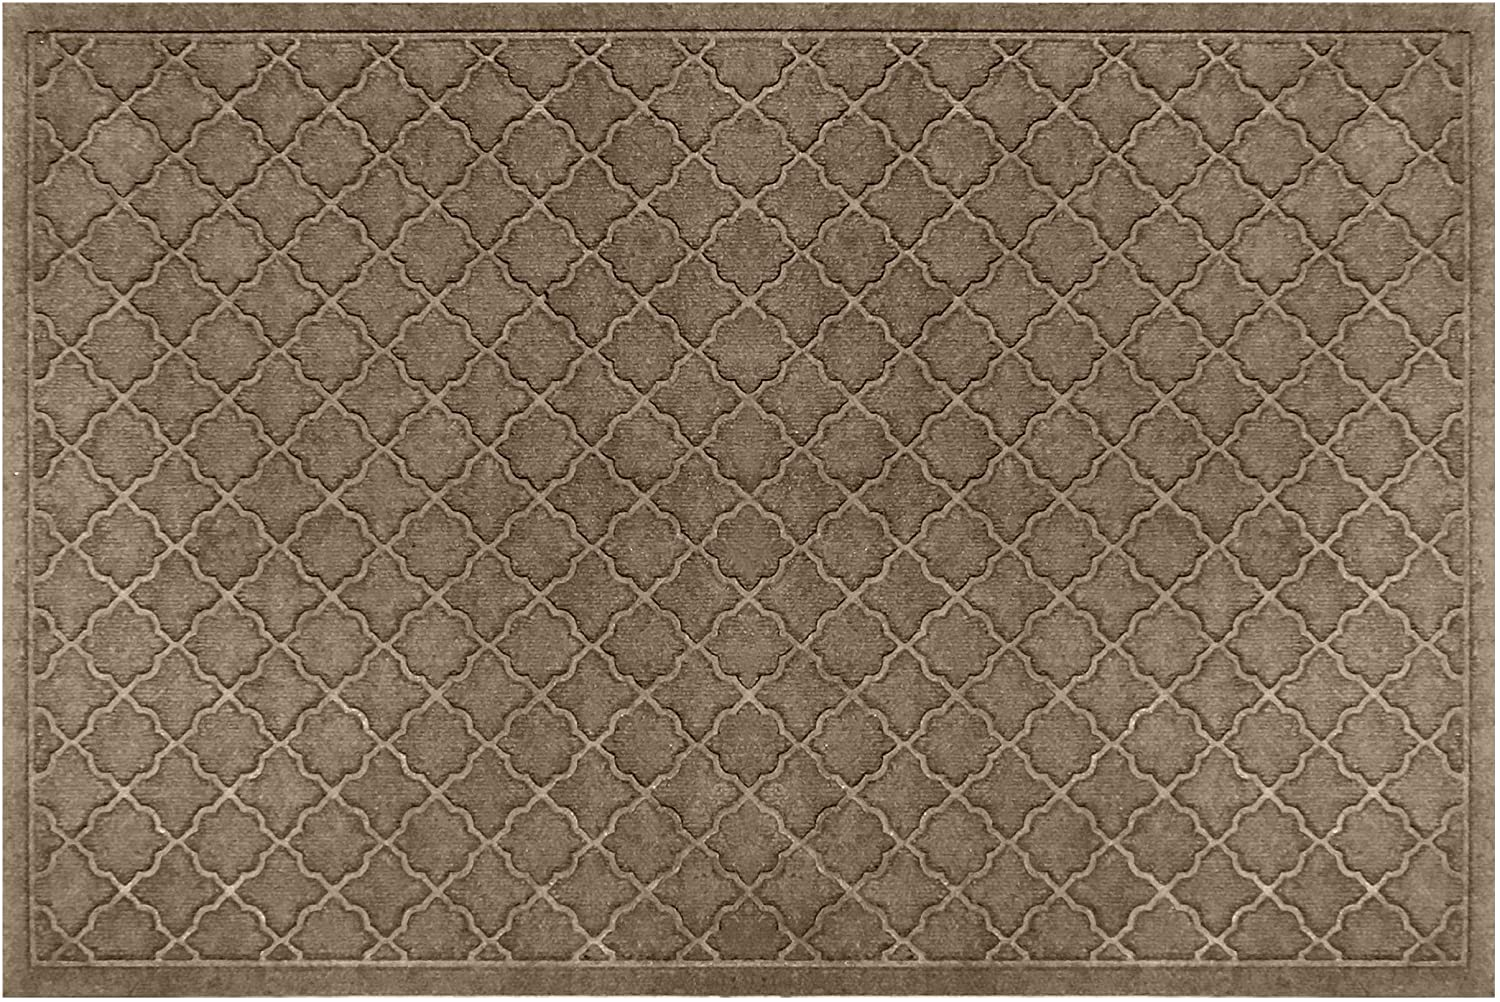 Bungalow Flooring Waterhog Door Mat, 3' x 5' Made in USA, Durable and Decorative Floor Covering, Skid Resistant, Indoor/Outdoor, Water-Trapping, Cordova Collection, Khaki/Camel